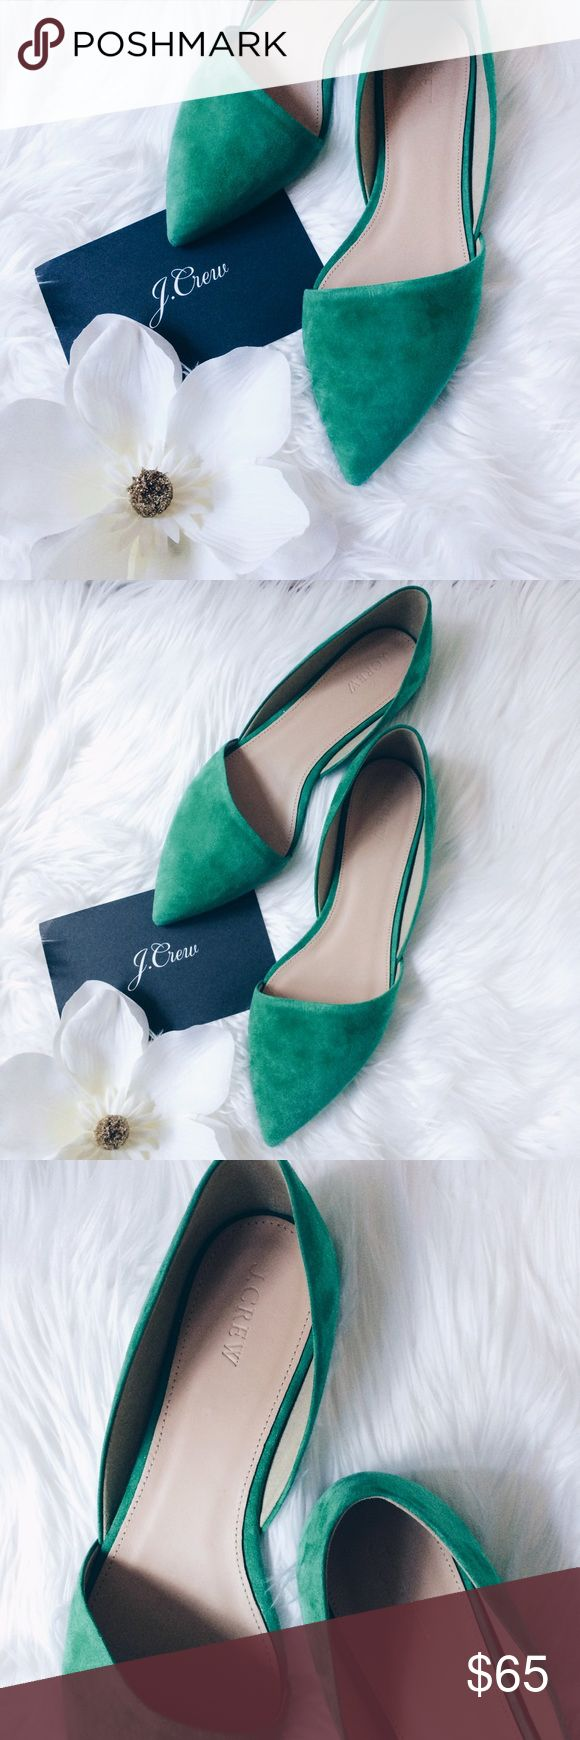 J.CREW   SLOAN D'ORSAY FLATS NW BOX. Brilliant kelly green suede upper that will catch all eyes and brighten up your outfit. Asymmetrical toe design. Size 9.5 and feels true to size.  This is from J.crew retail, not factory. J. Crew Shoes Flats & Loafers